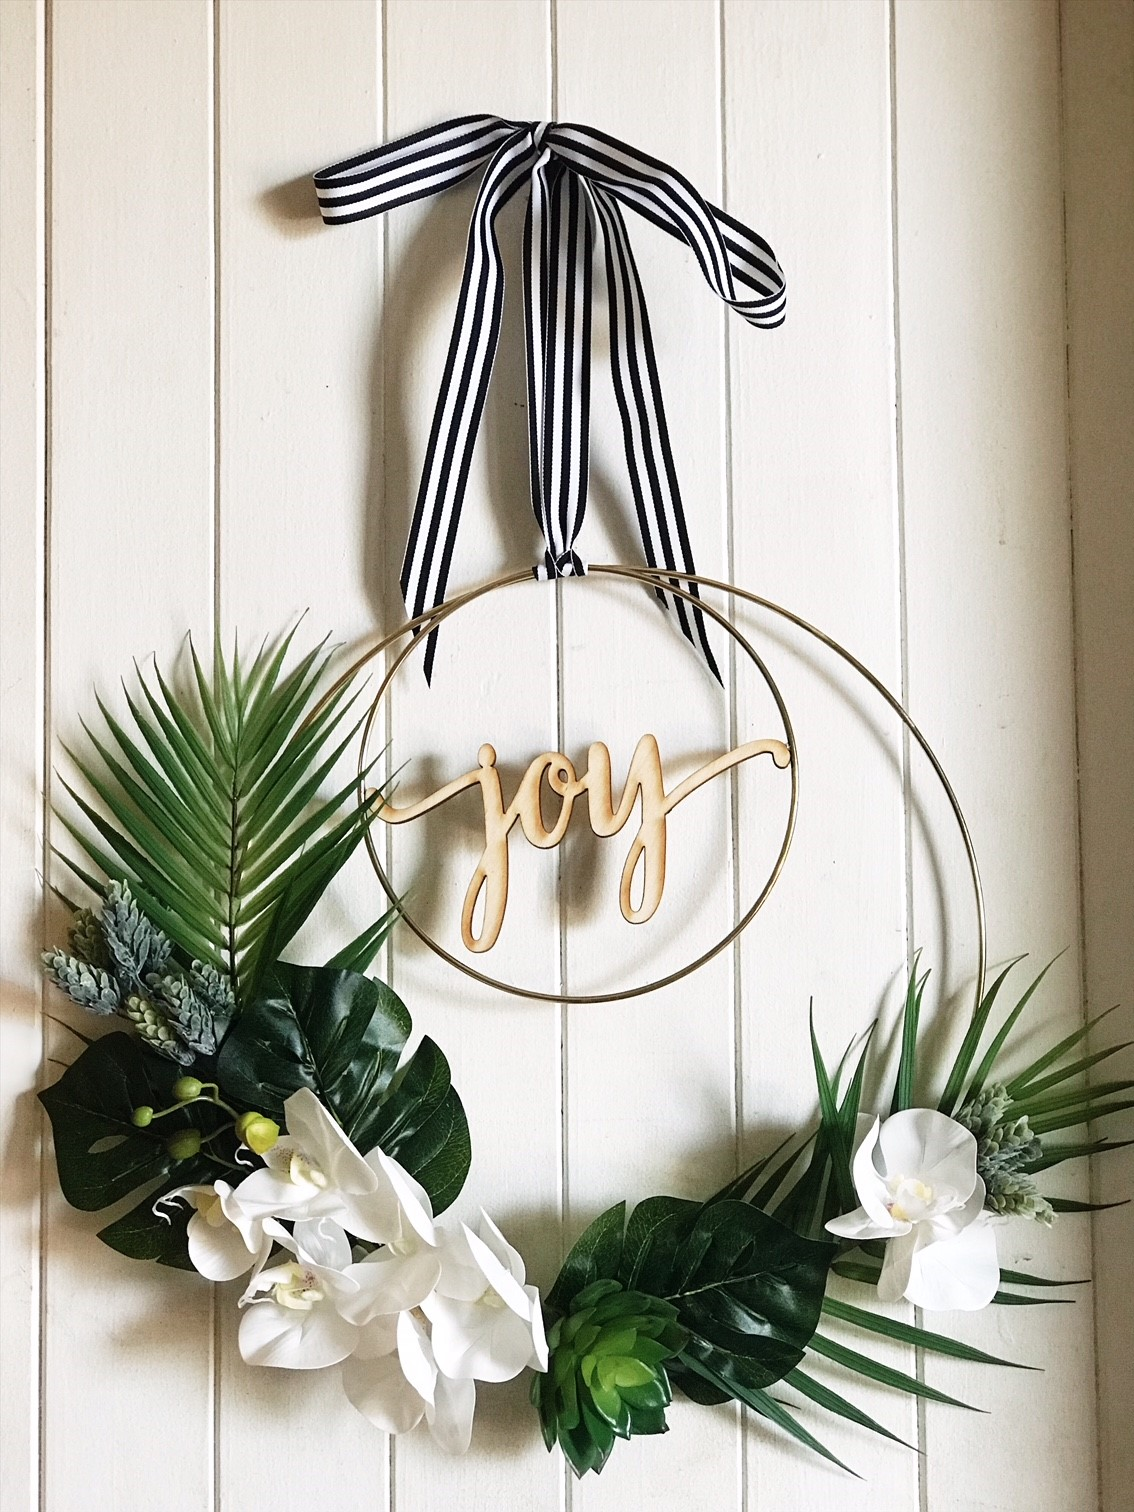 DIY Tropical Christmas Wreath